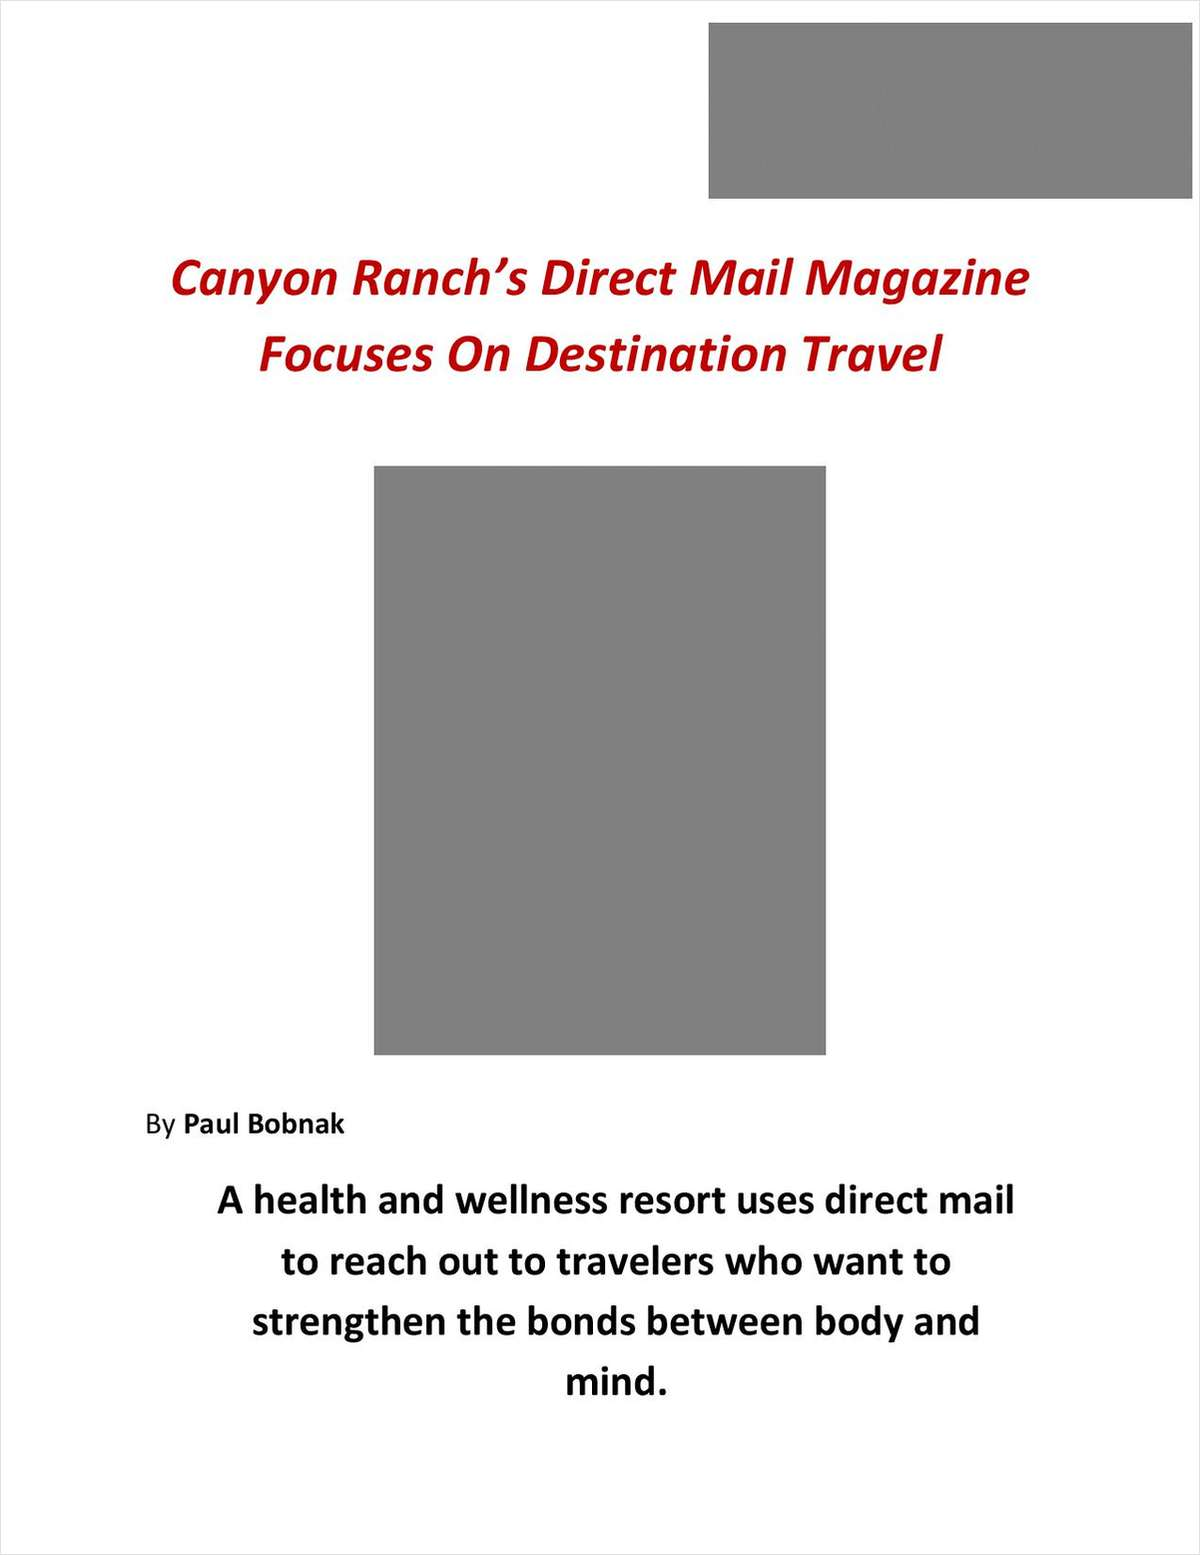 Canyon Ranch's Direct Mail Inspires Travel